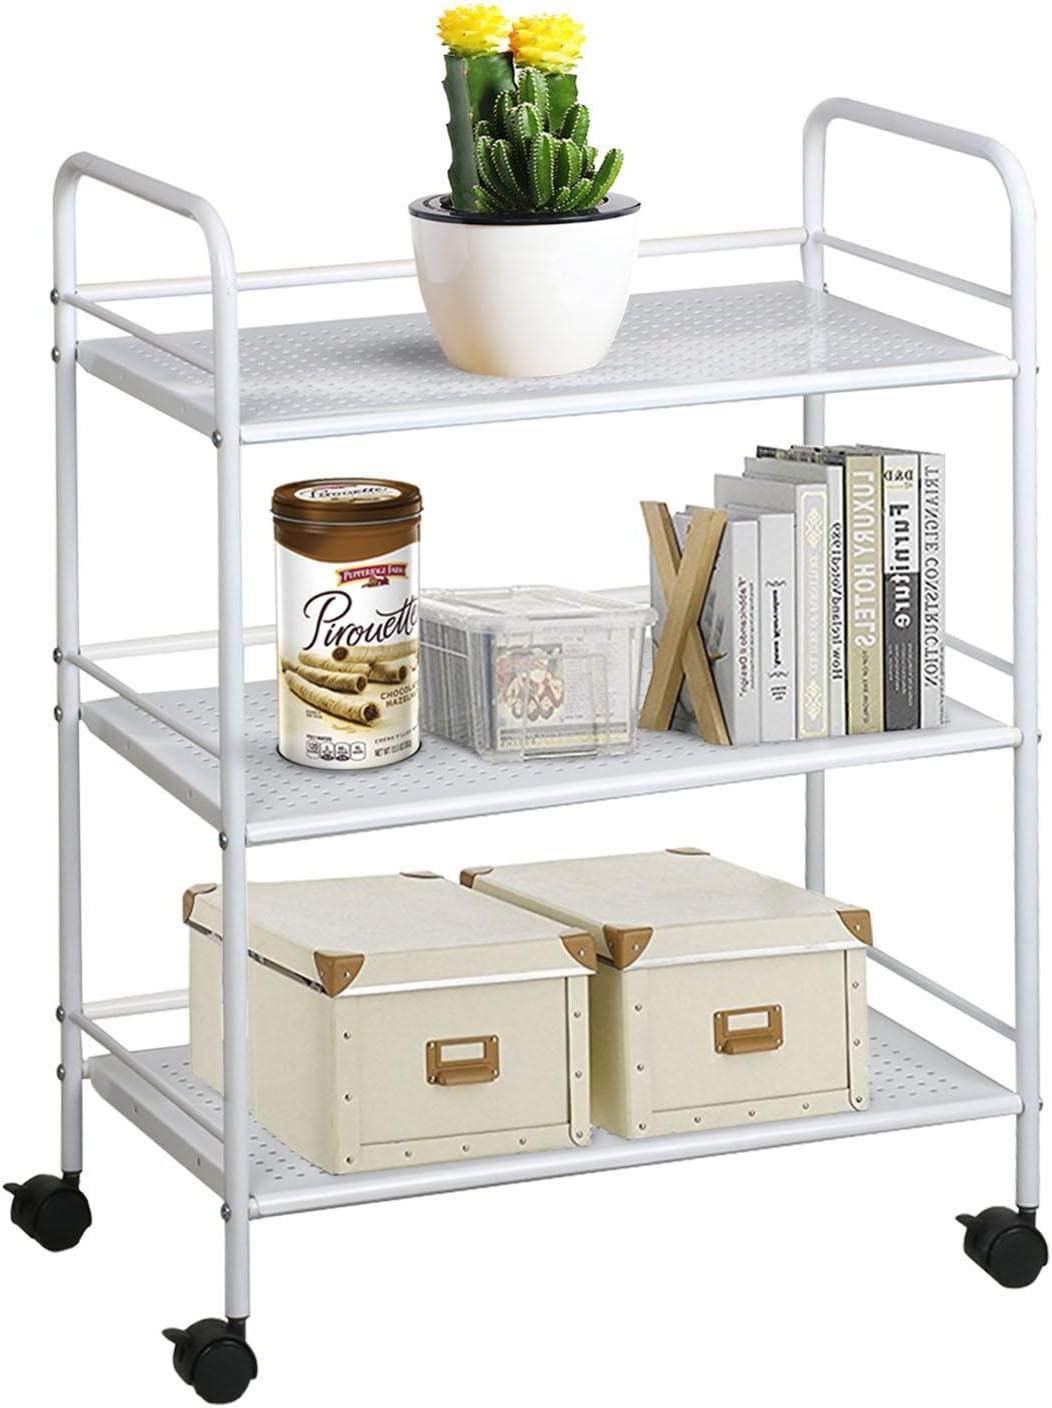 YAHEETECH 3 Tier Salon Trolley Cart Hair Rolling Cart 3 Layers Storage Tray Cart on Wheels Hairdressing Rolling Utility Storage Organizer Beauty SPA Tool Holder White 3 Tier